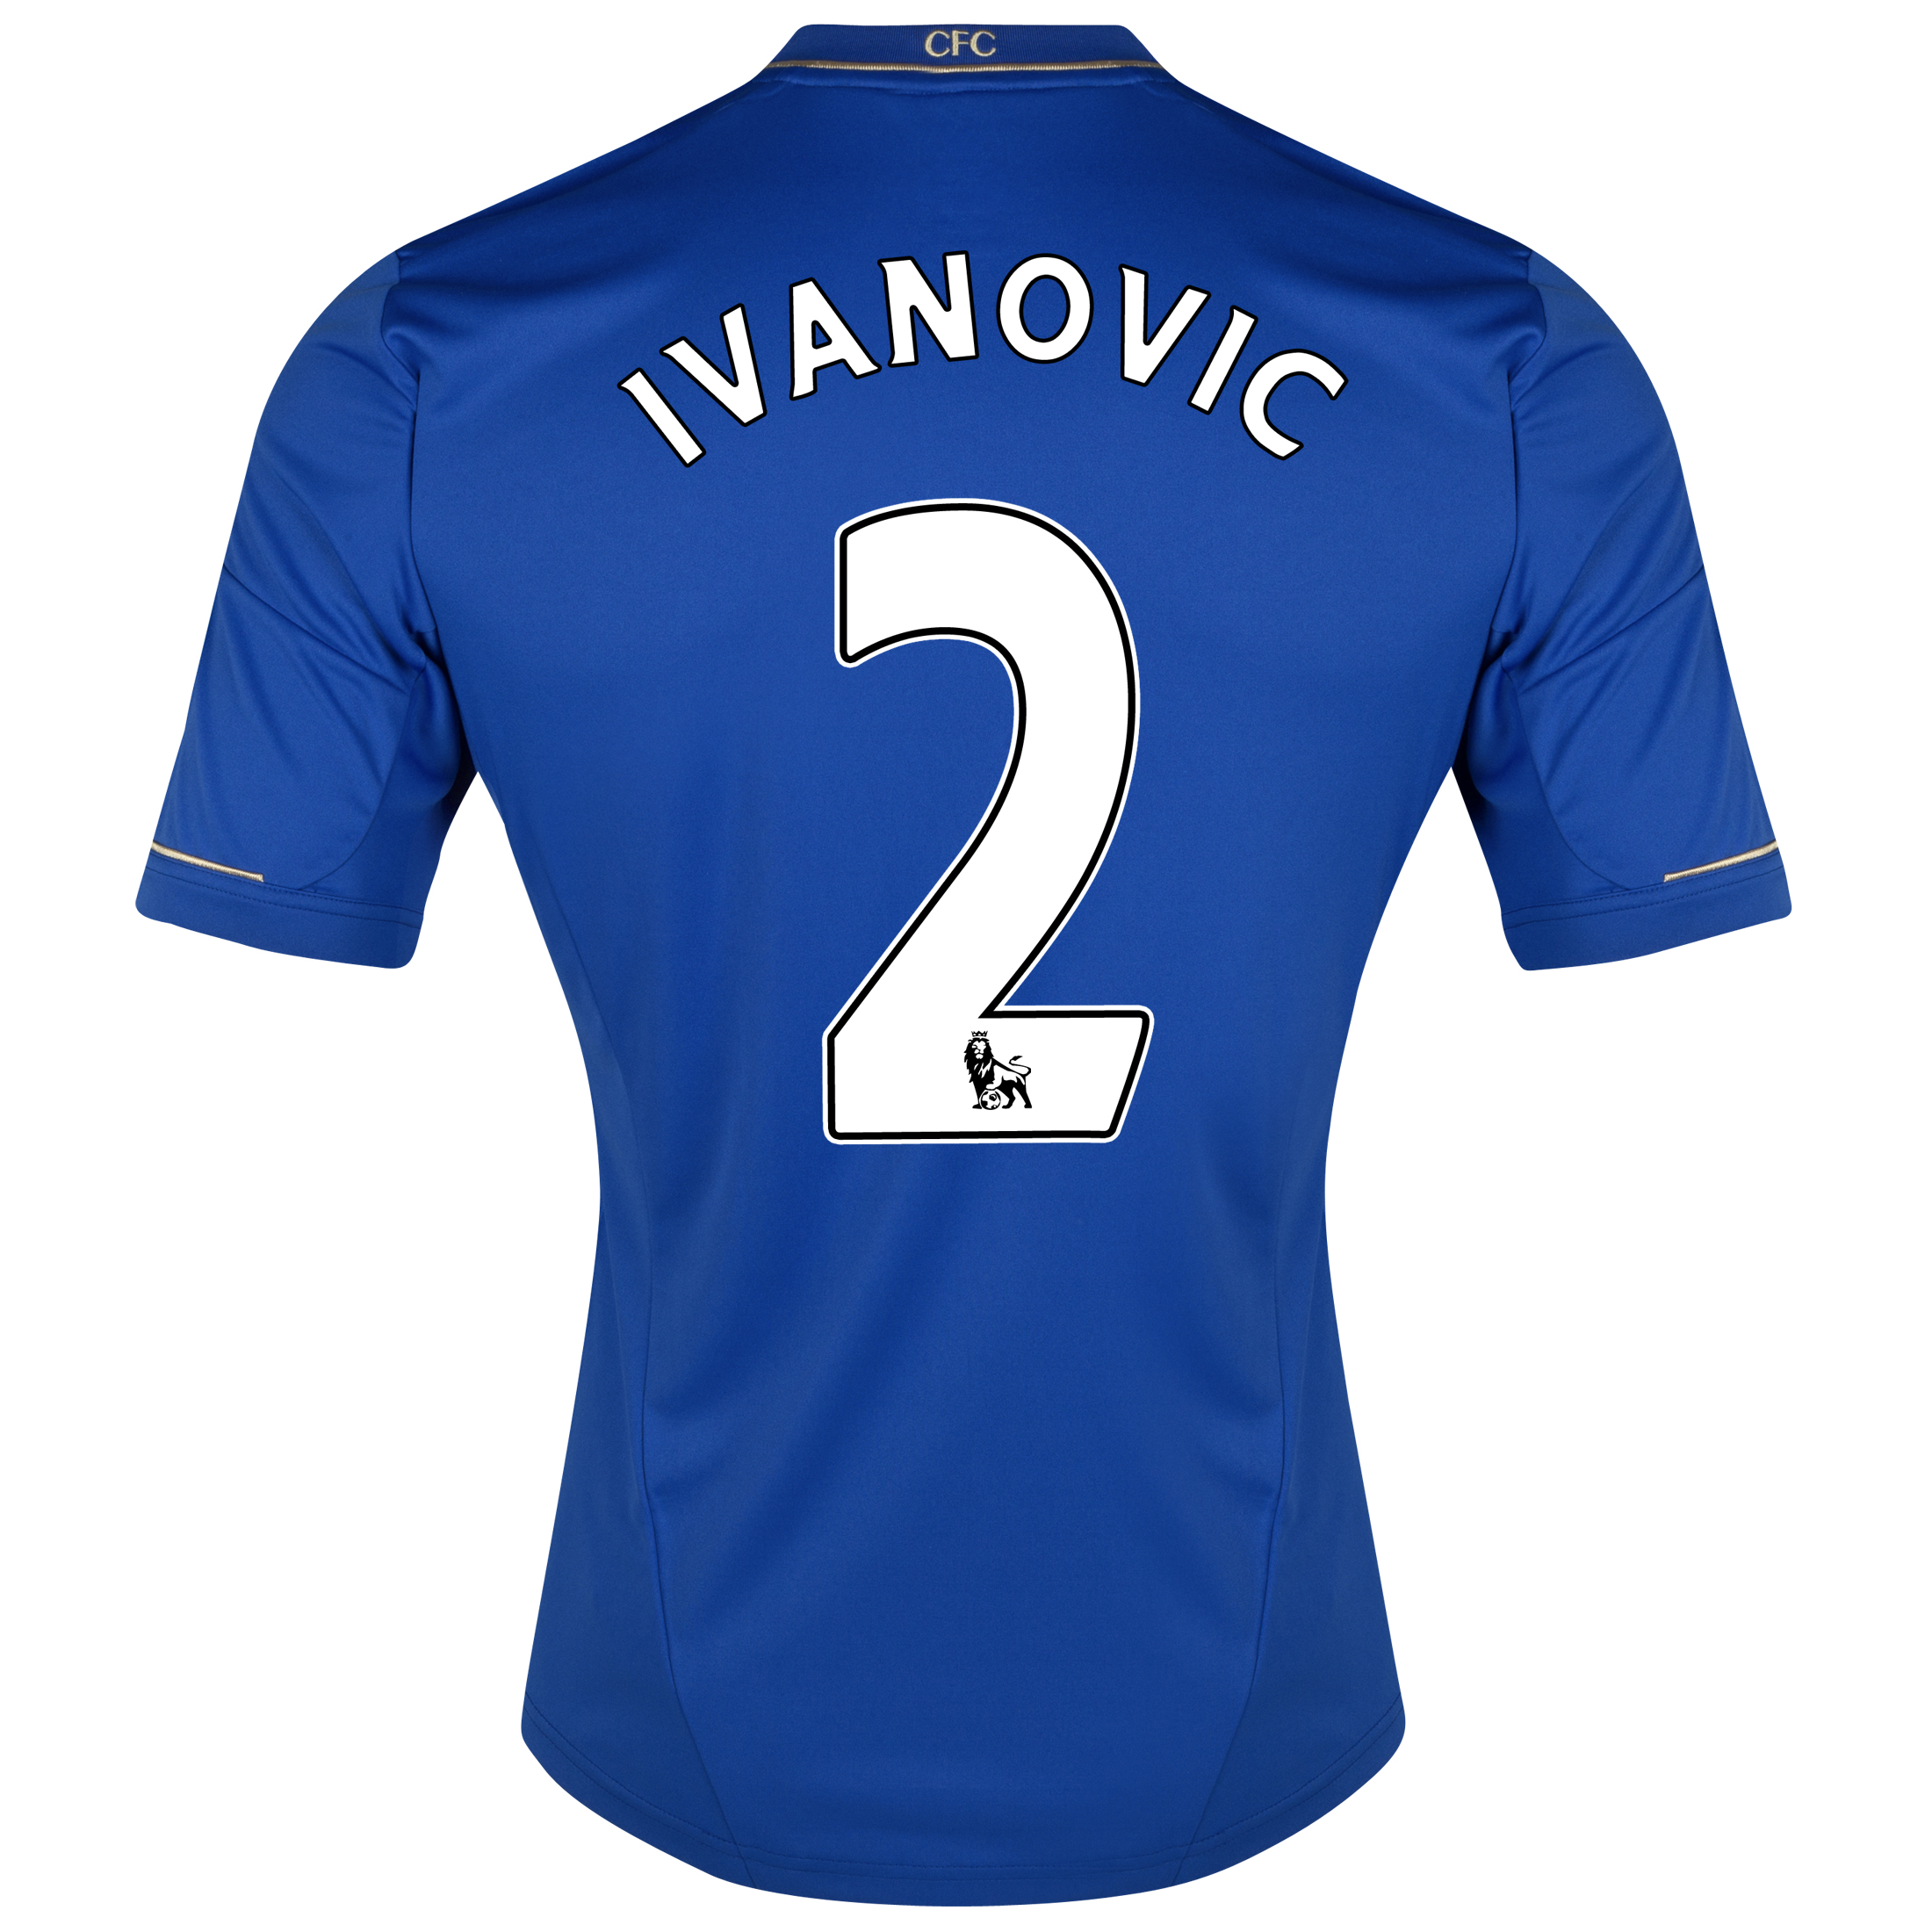 Chelsea Home Shirt 2012/13 with Ivanovic 2 printing